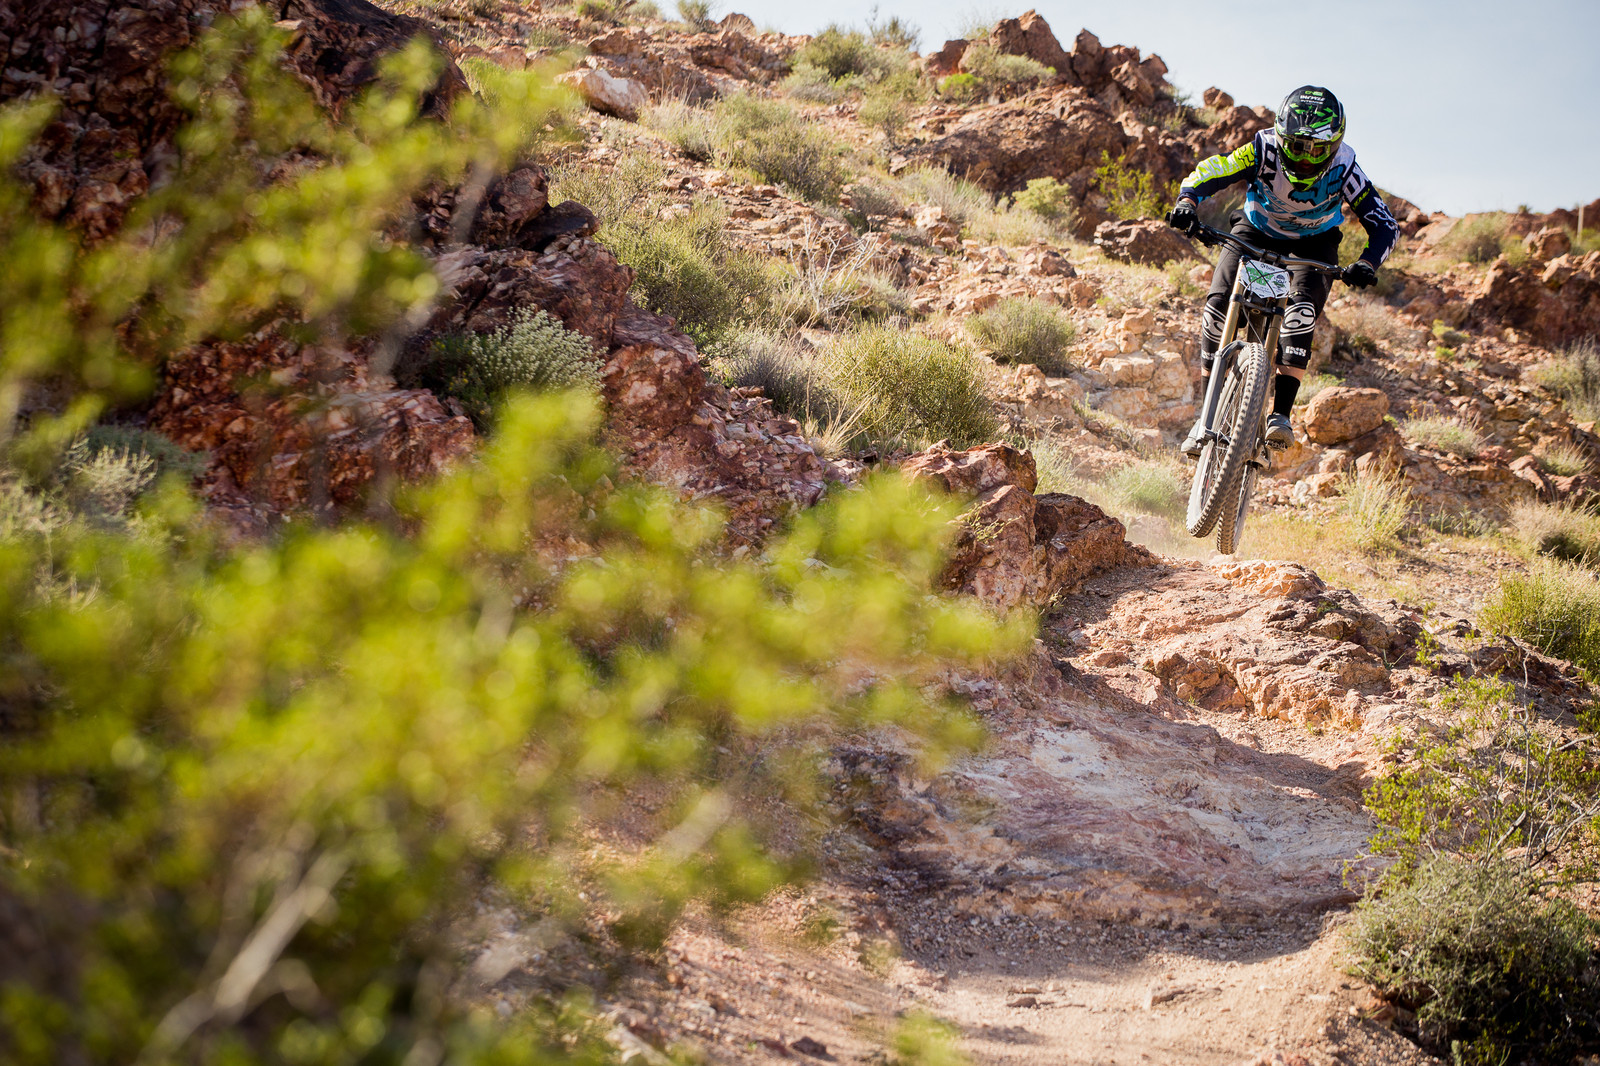 2017 Reaper Madness DH at Bootleg Canyon-11 - 2017 Reaper Madness DH Photos - Mountain Biking Pictures - Vital MTB